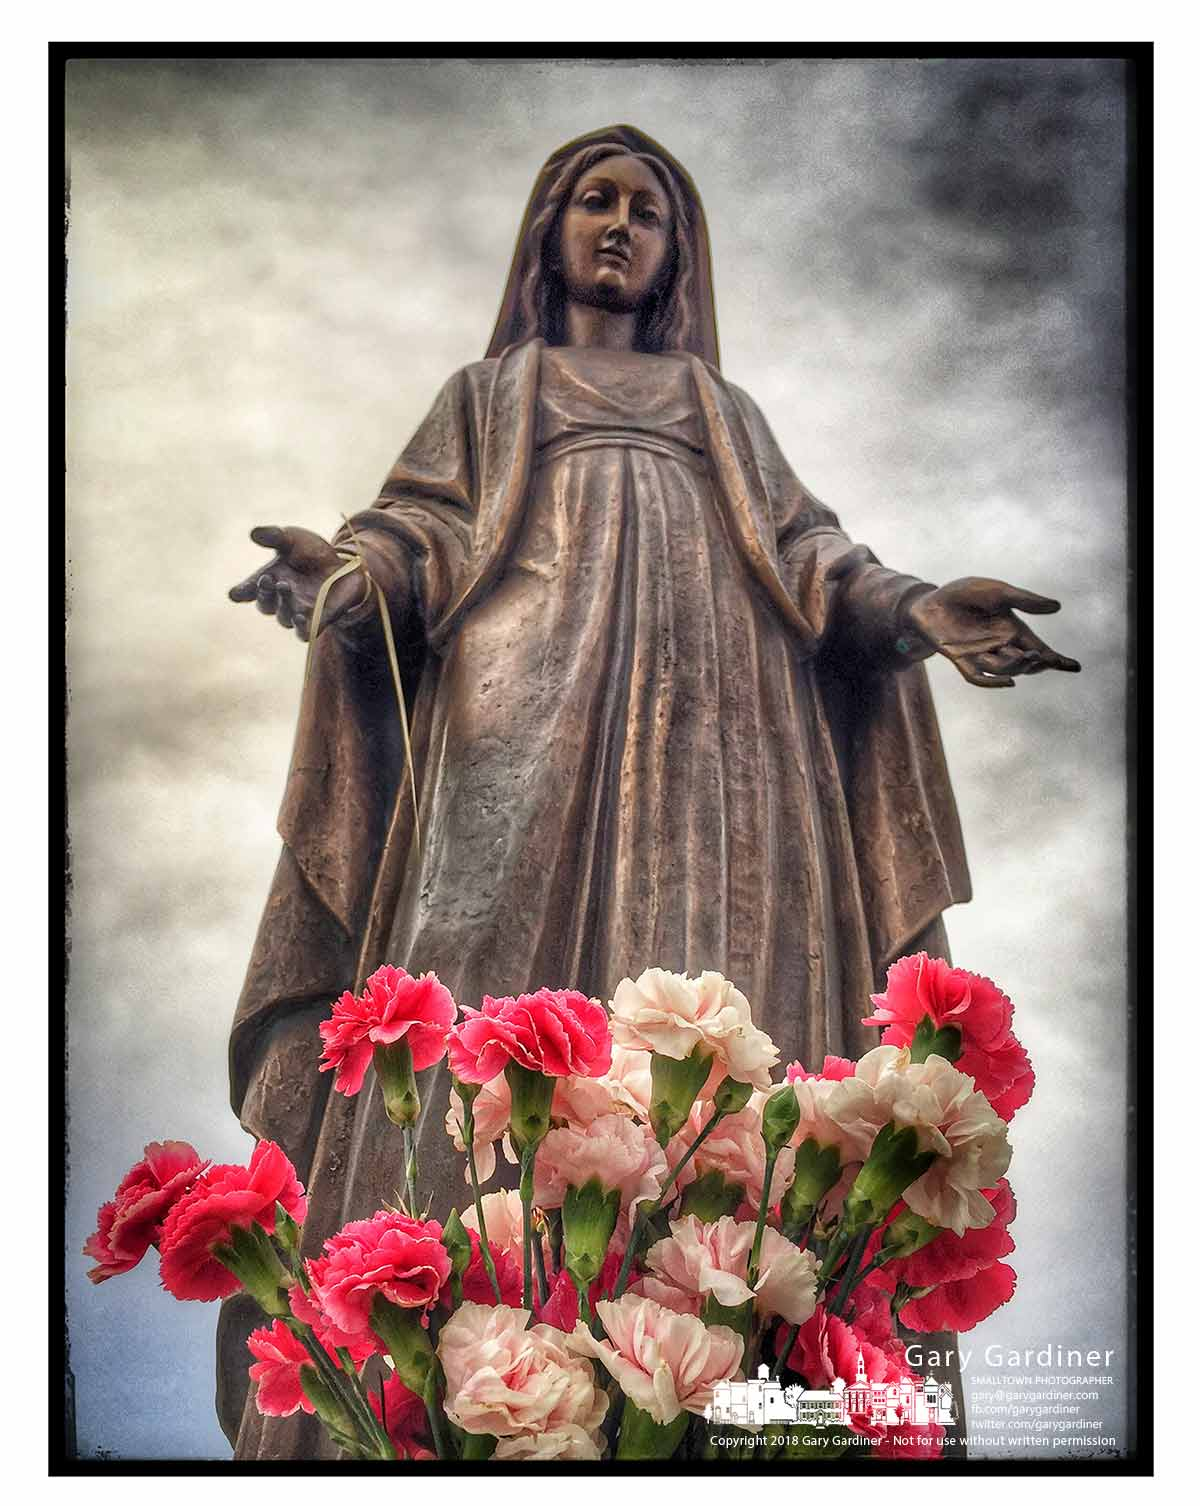 Flowers left by a parishioner sit at the feet of the statue of Mary at the shrine near the entrance to St. Paul the Apostle Catholic Church in Westerville, Ohio. My Final Photo for May 6, 2018.